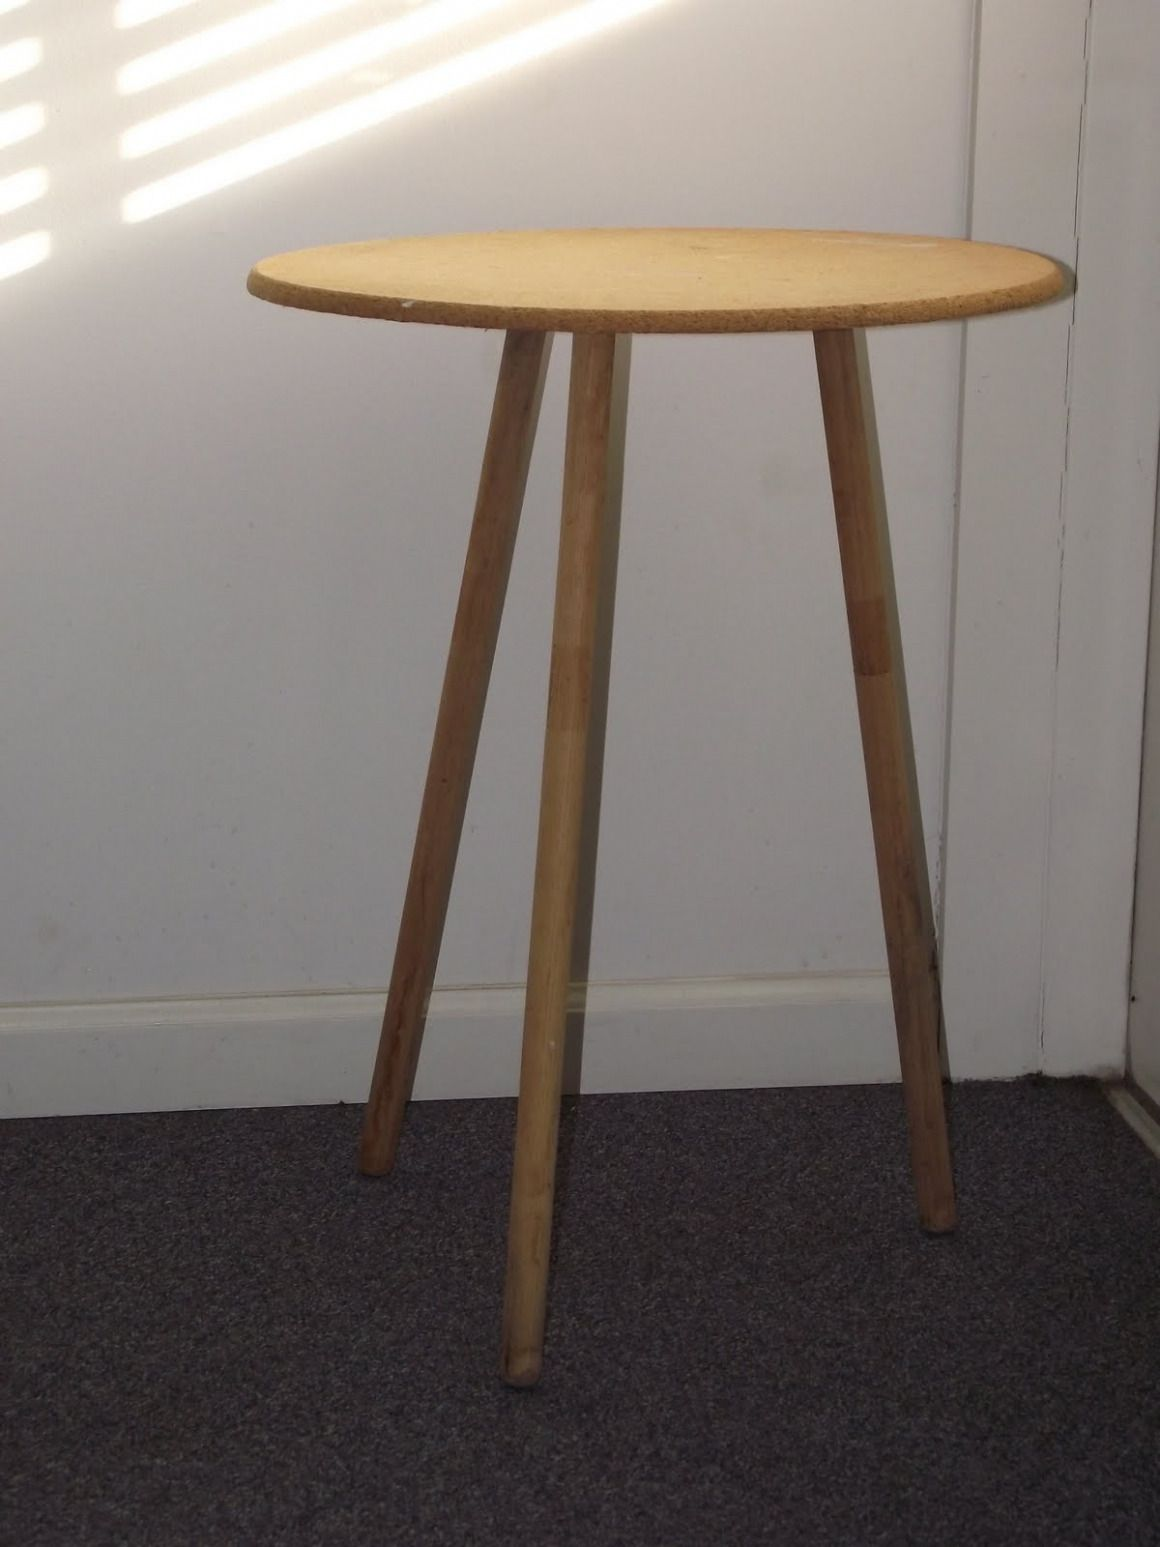 100 Round 3 Leg Table Best Modern Furniture Check More At Http Livelylighting